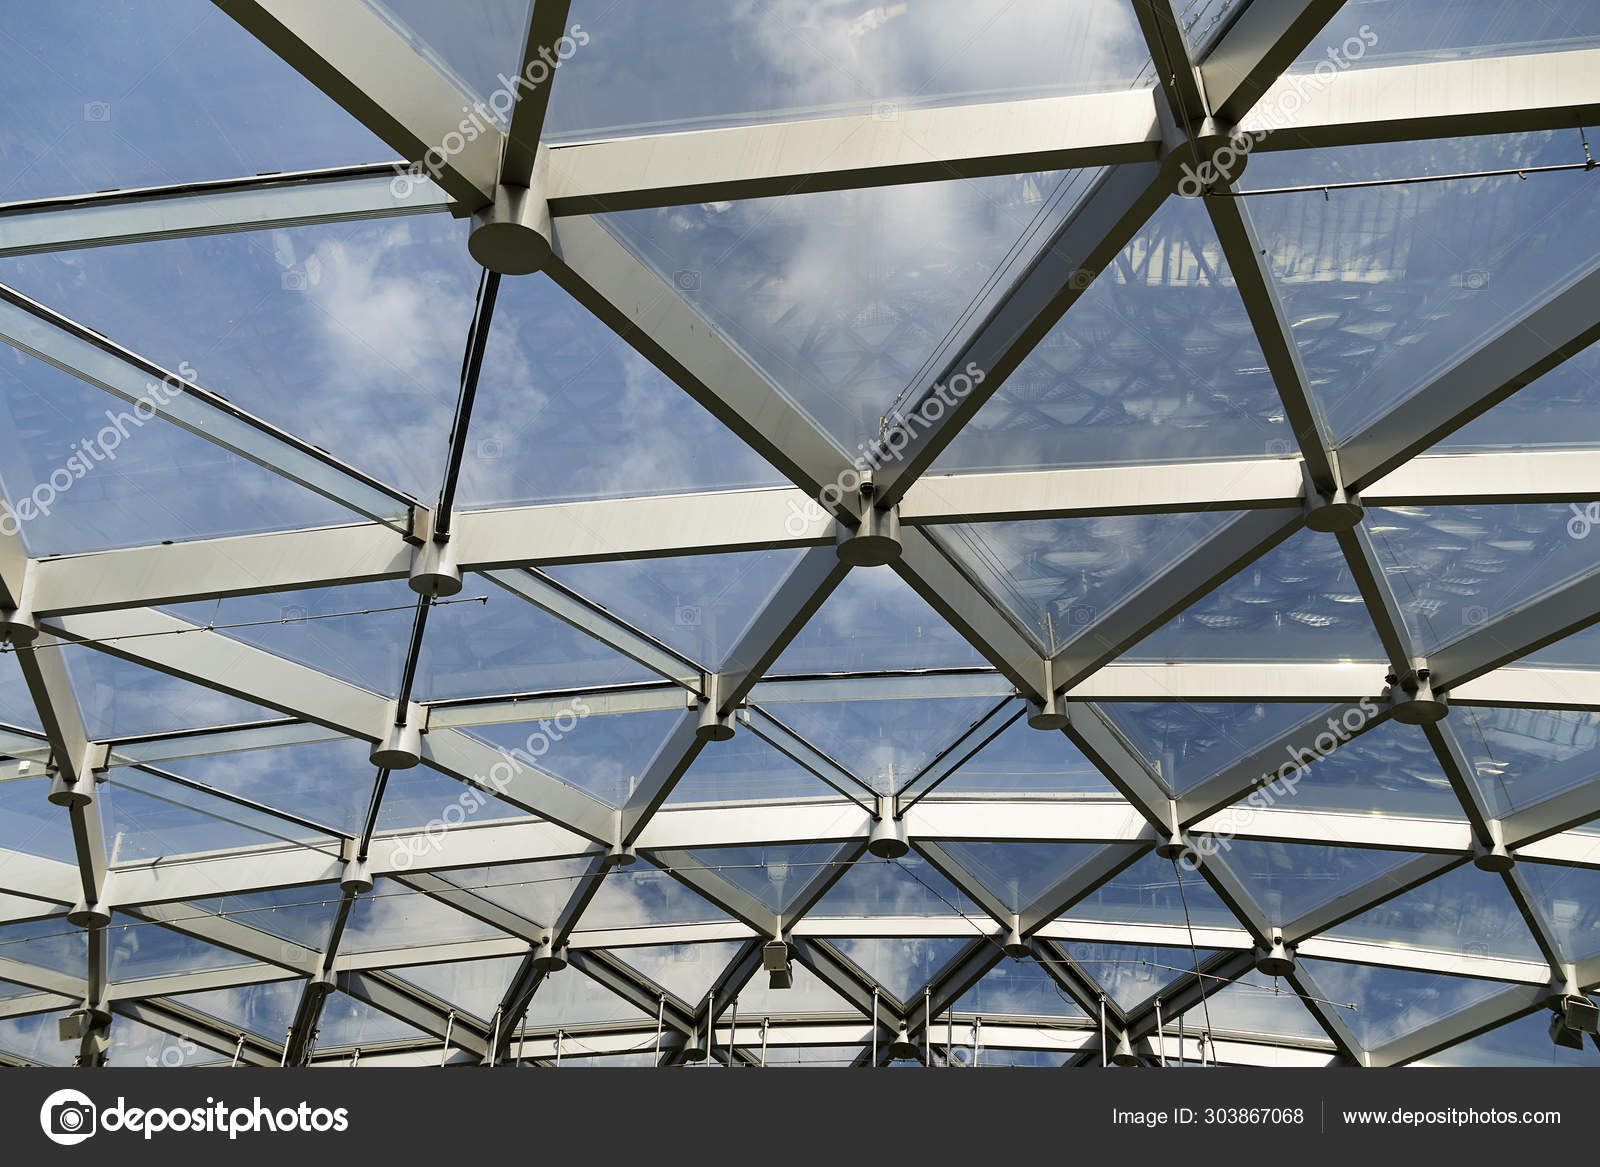 Futuristic Metal And Glass Roof Design Close Up Modern Ceiling With Elements Of Glass Metal Mesh Blue Sky Stock Photo Image By C S Telenkov 303867068